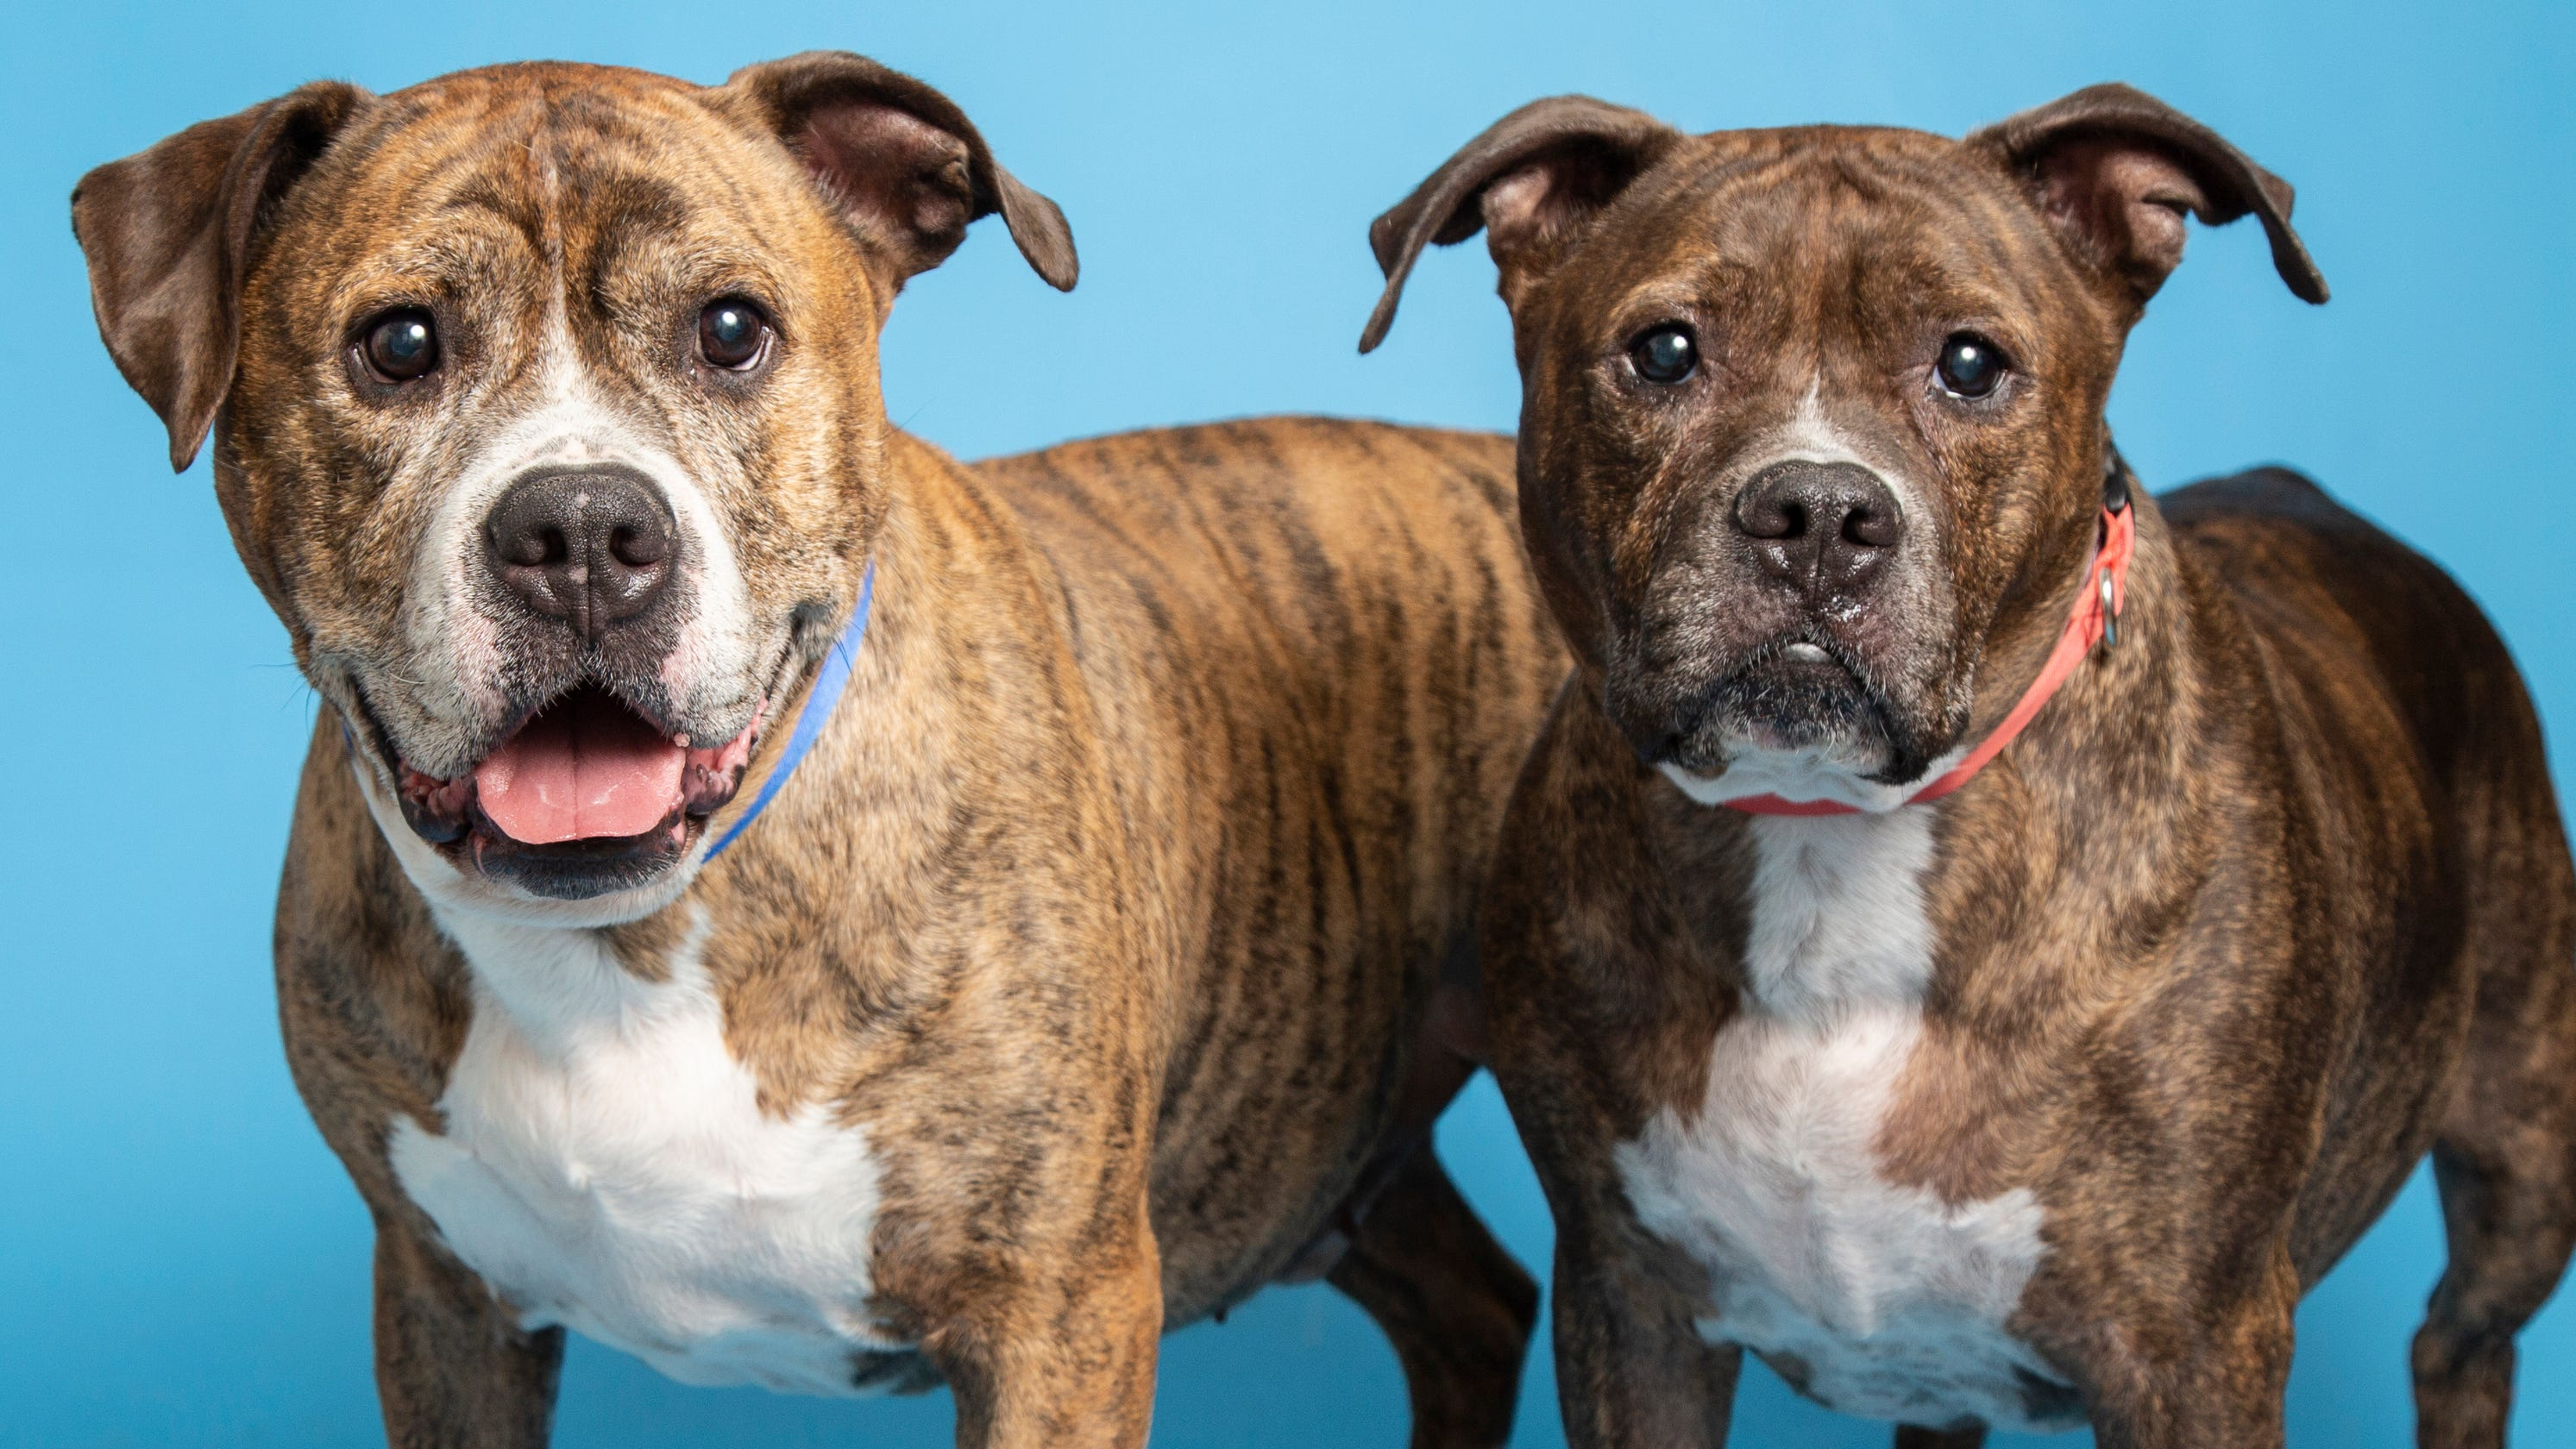 Best buds for life and more up for adoption in Valley shelters